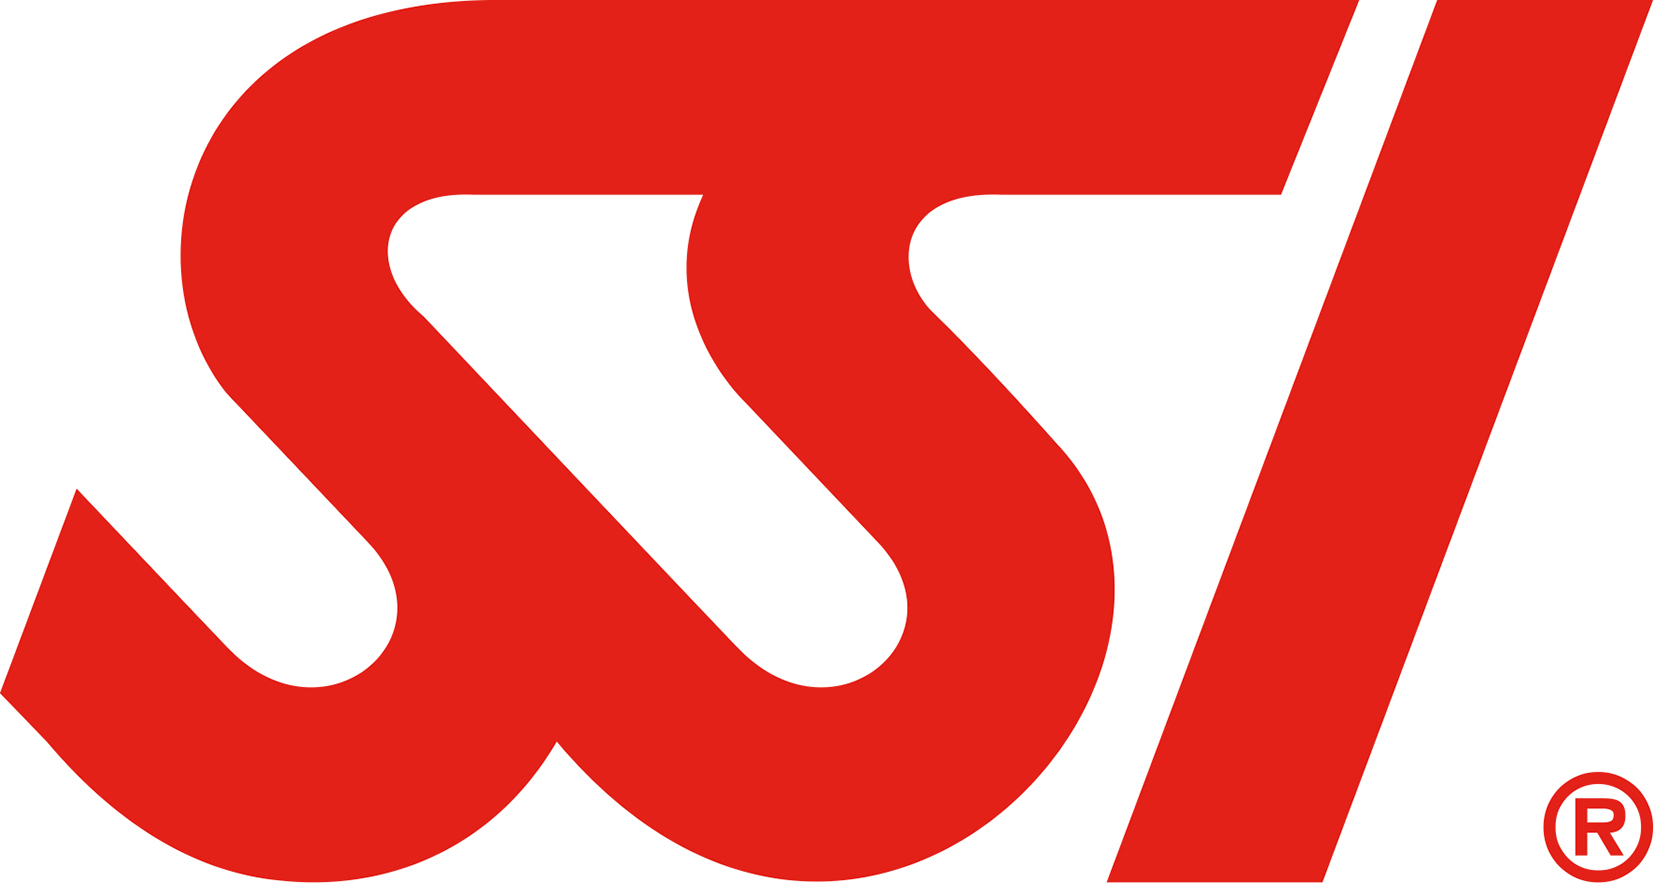 SSI_LOGO_RGB_Red